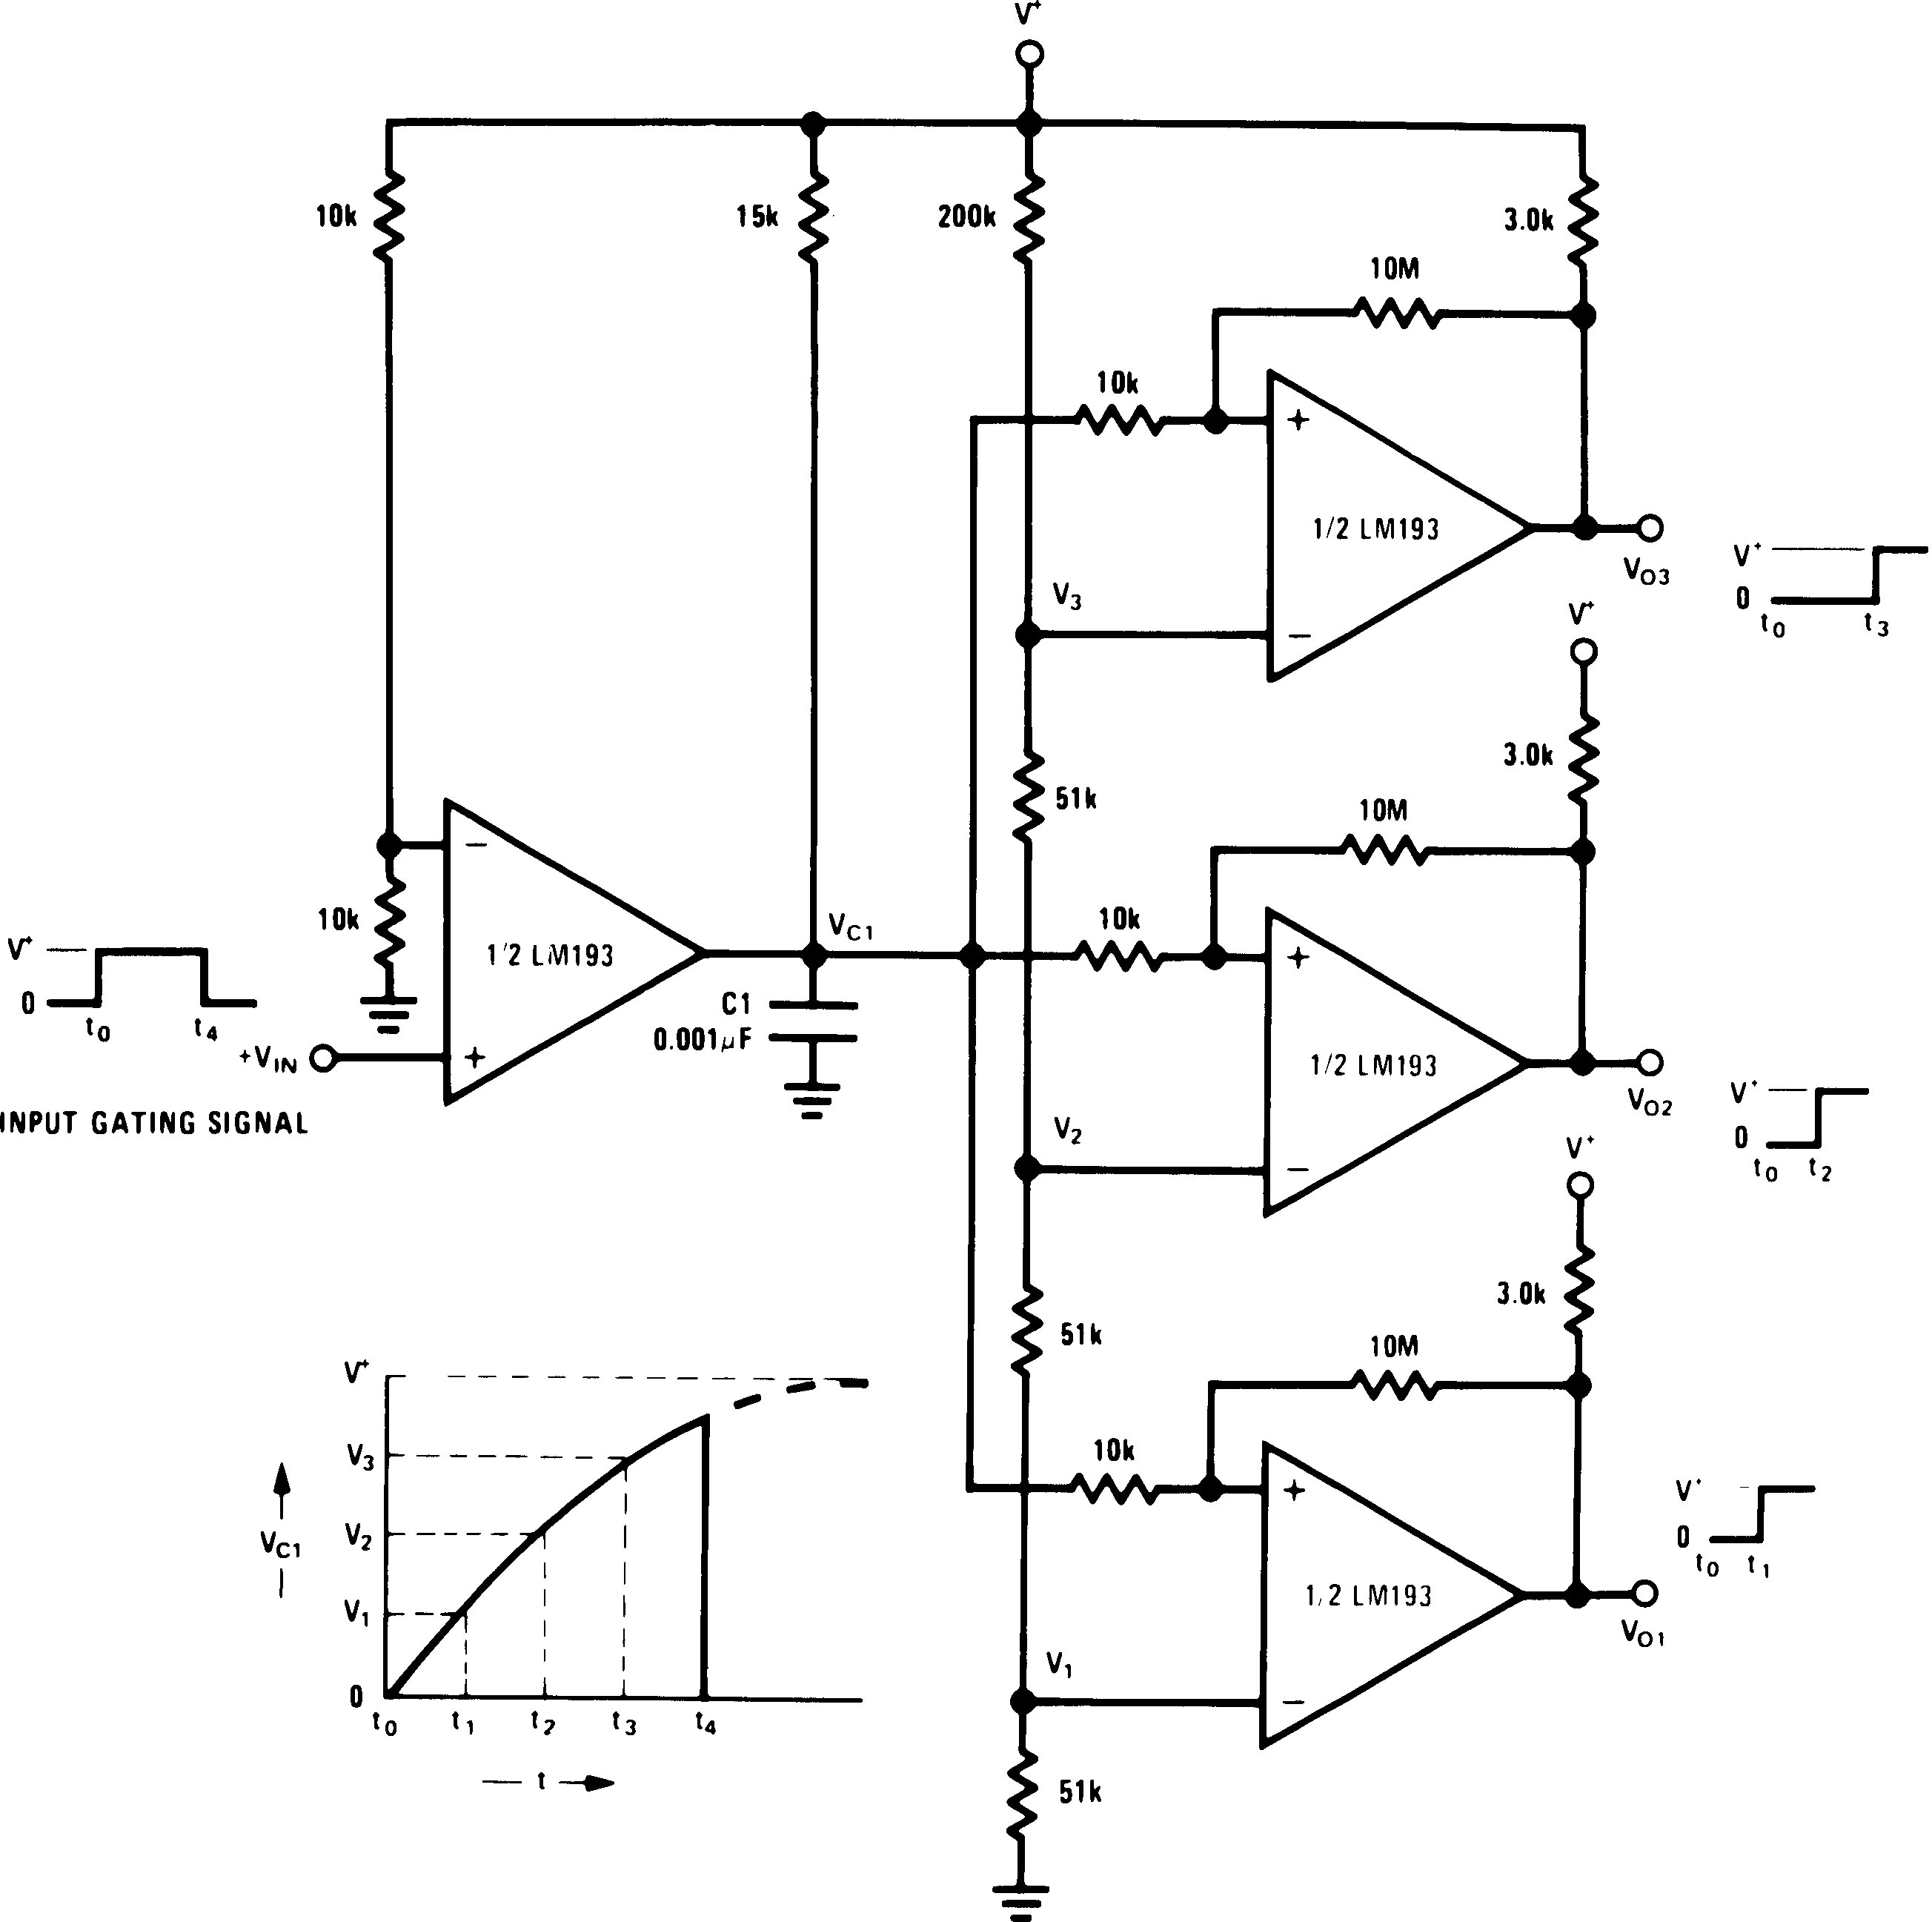 Lm193 N Simple Car Sound System Diagram Circuit Of Stereo Lm2903 Lm293 Lm393 00570907